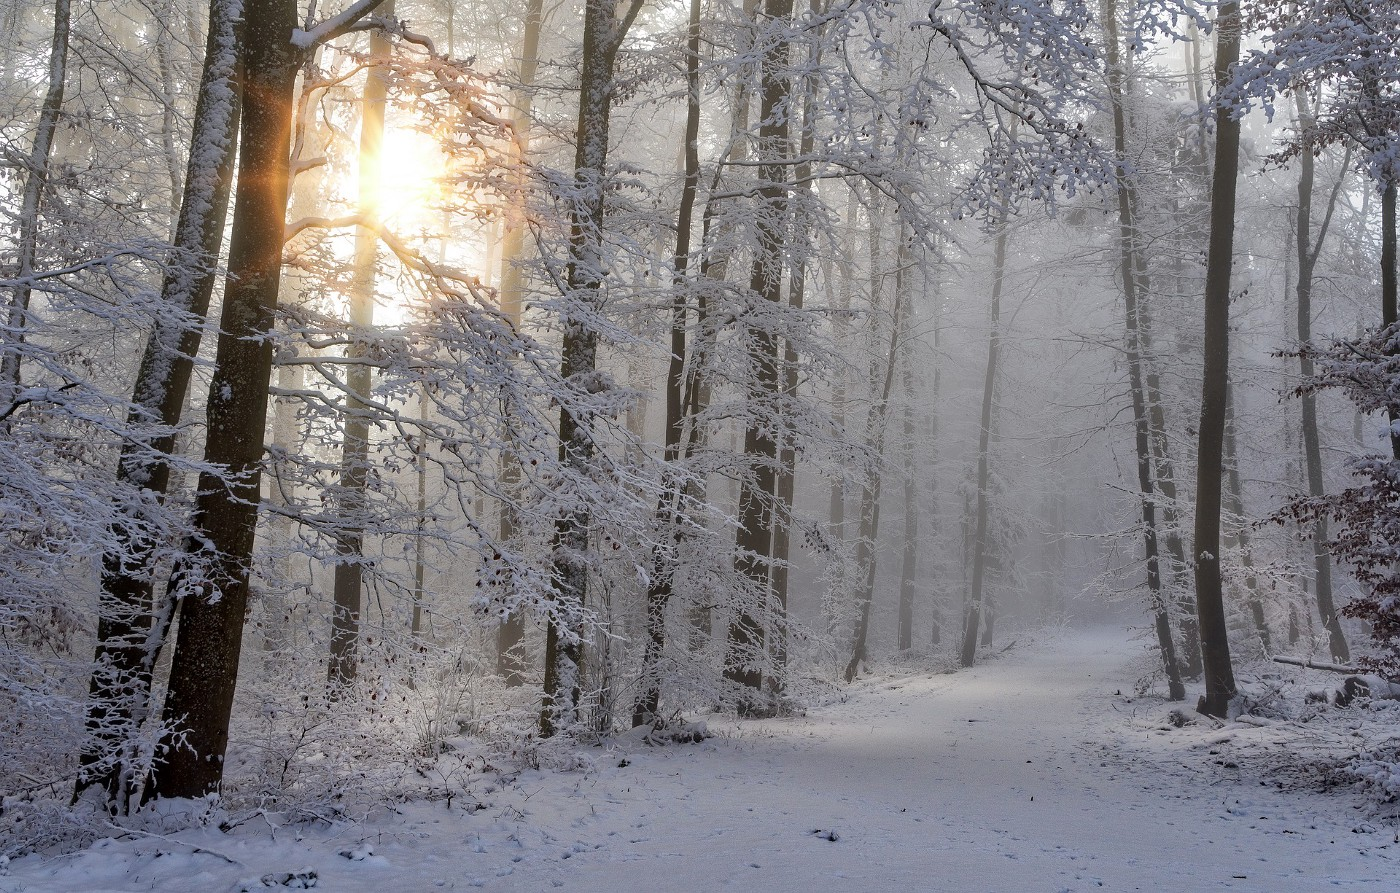 Snow in woods with sun shining